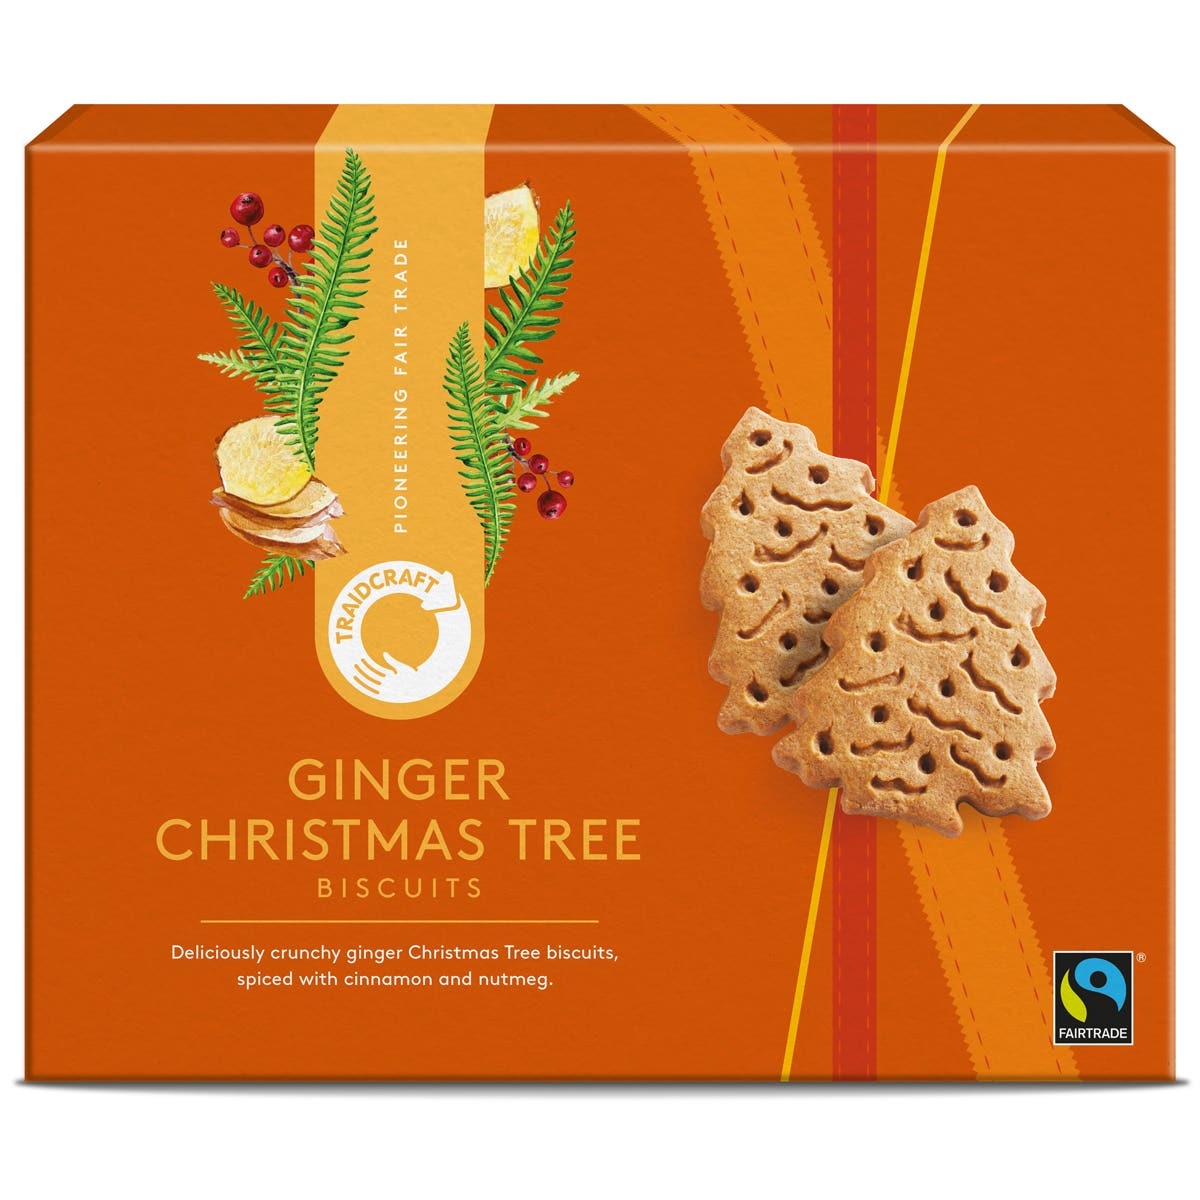 Traidcraft Ginger Christmas Tree Biscuits (12x170g) CASE